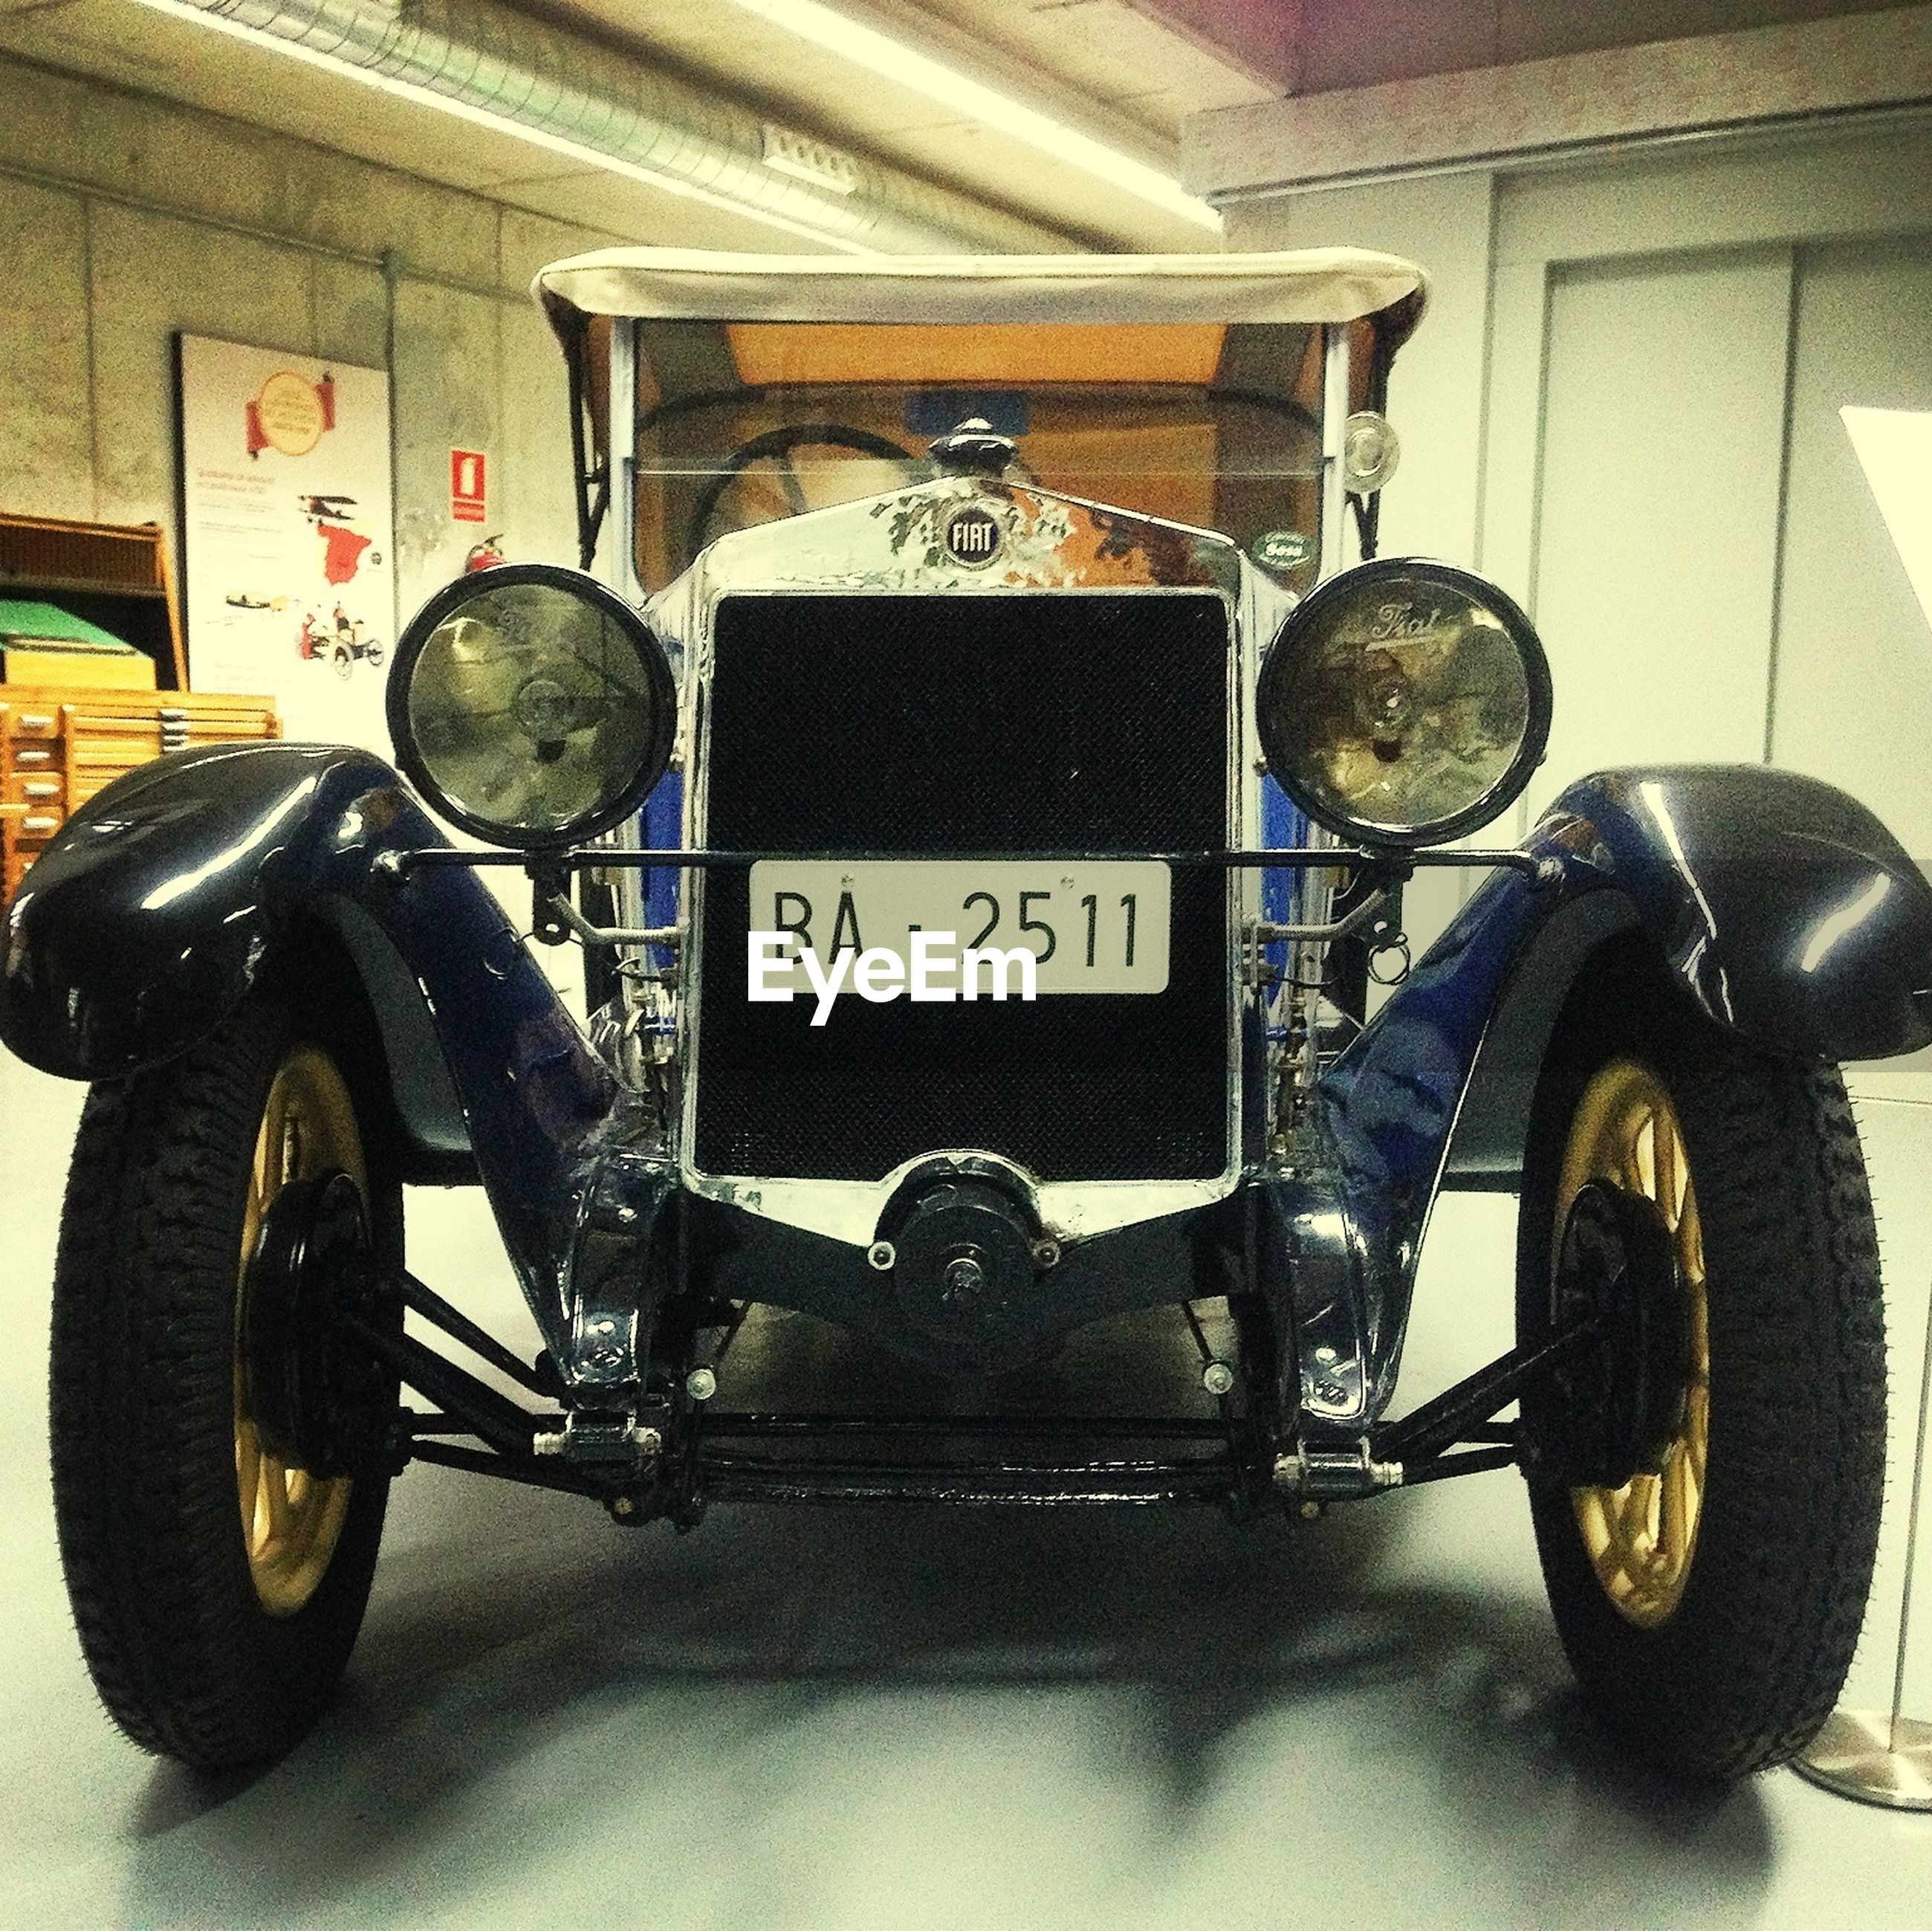 indoors, transportation, old-fashioned, mode of transport, retro styled, land vehicle, vintage, communication, text, stationary, technology, antique, western script, metal, no people, car, old, vintage car, close-up, headlight